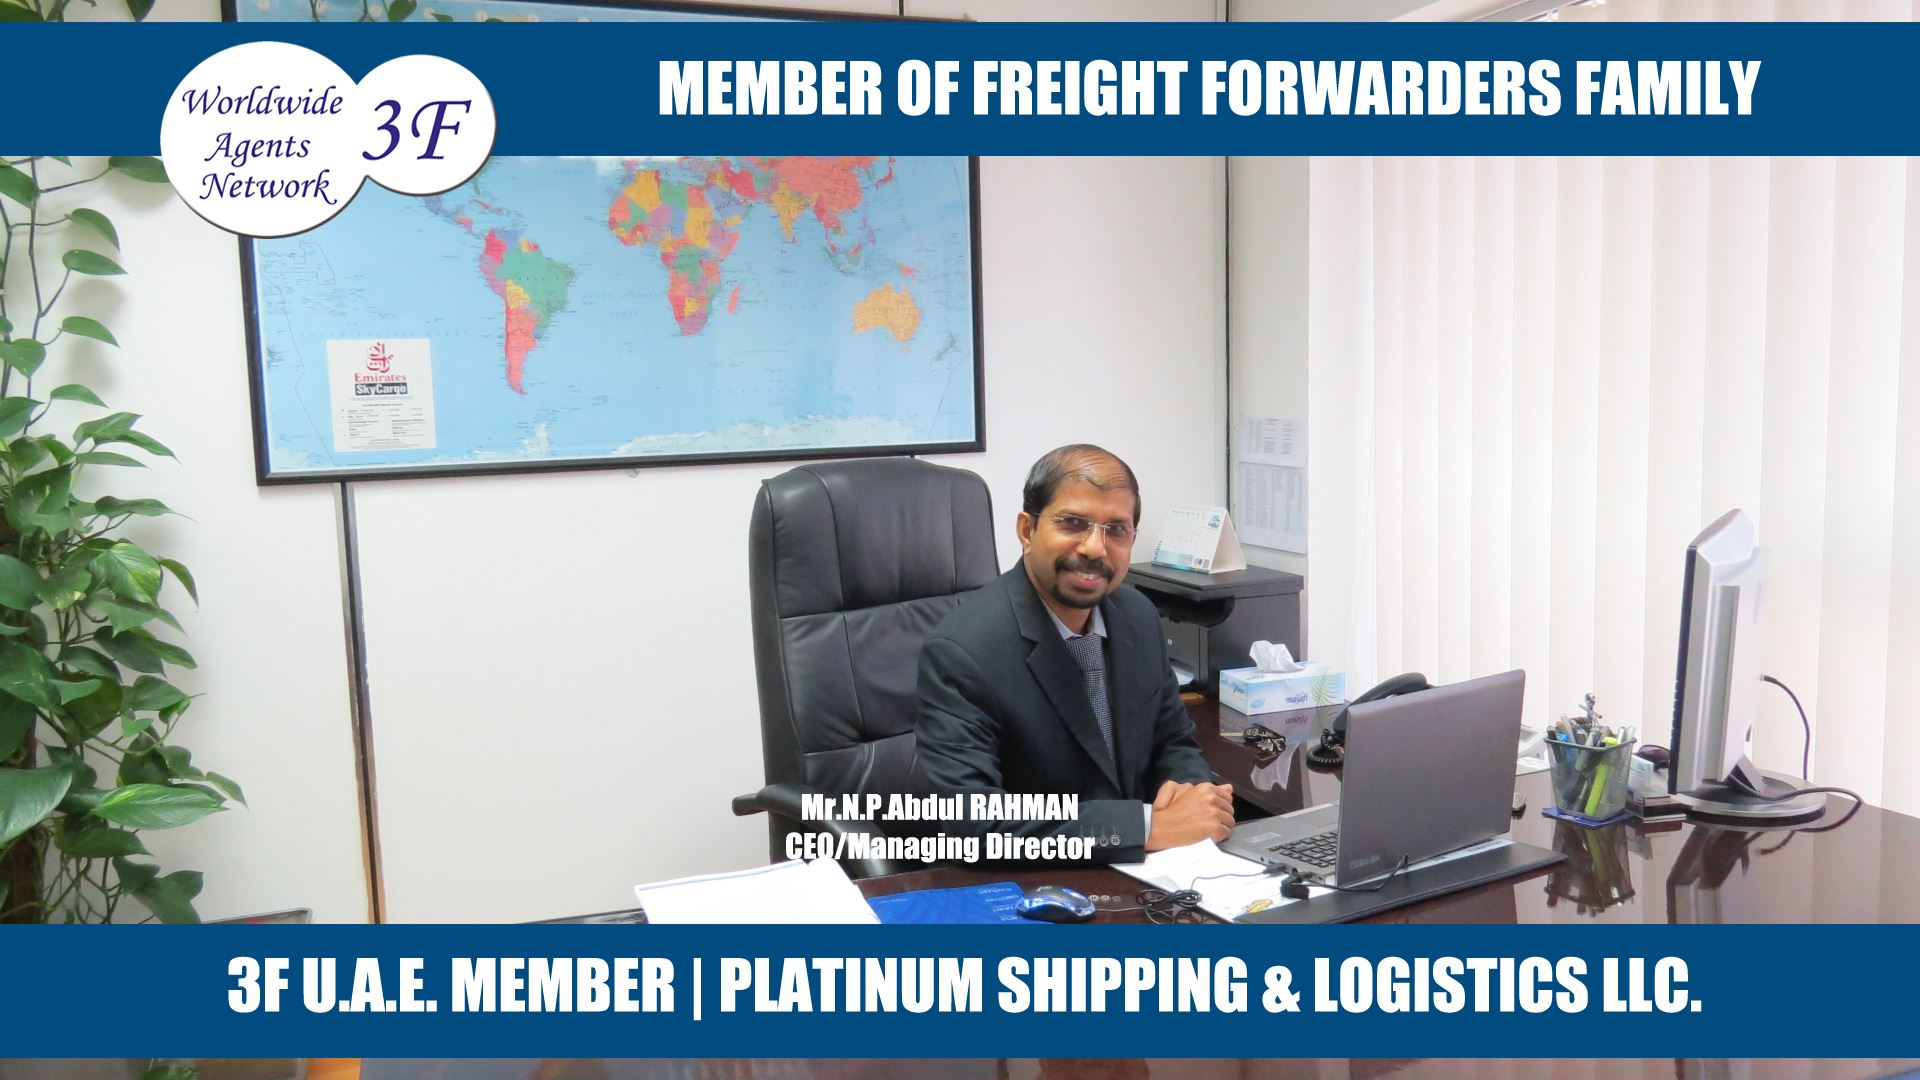 Freight Forwarders Family Worldwide Agents Network - 3F Chairman